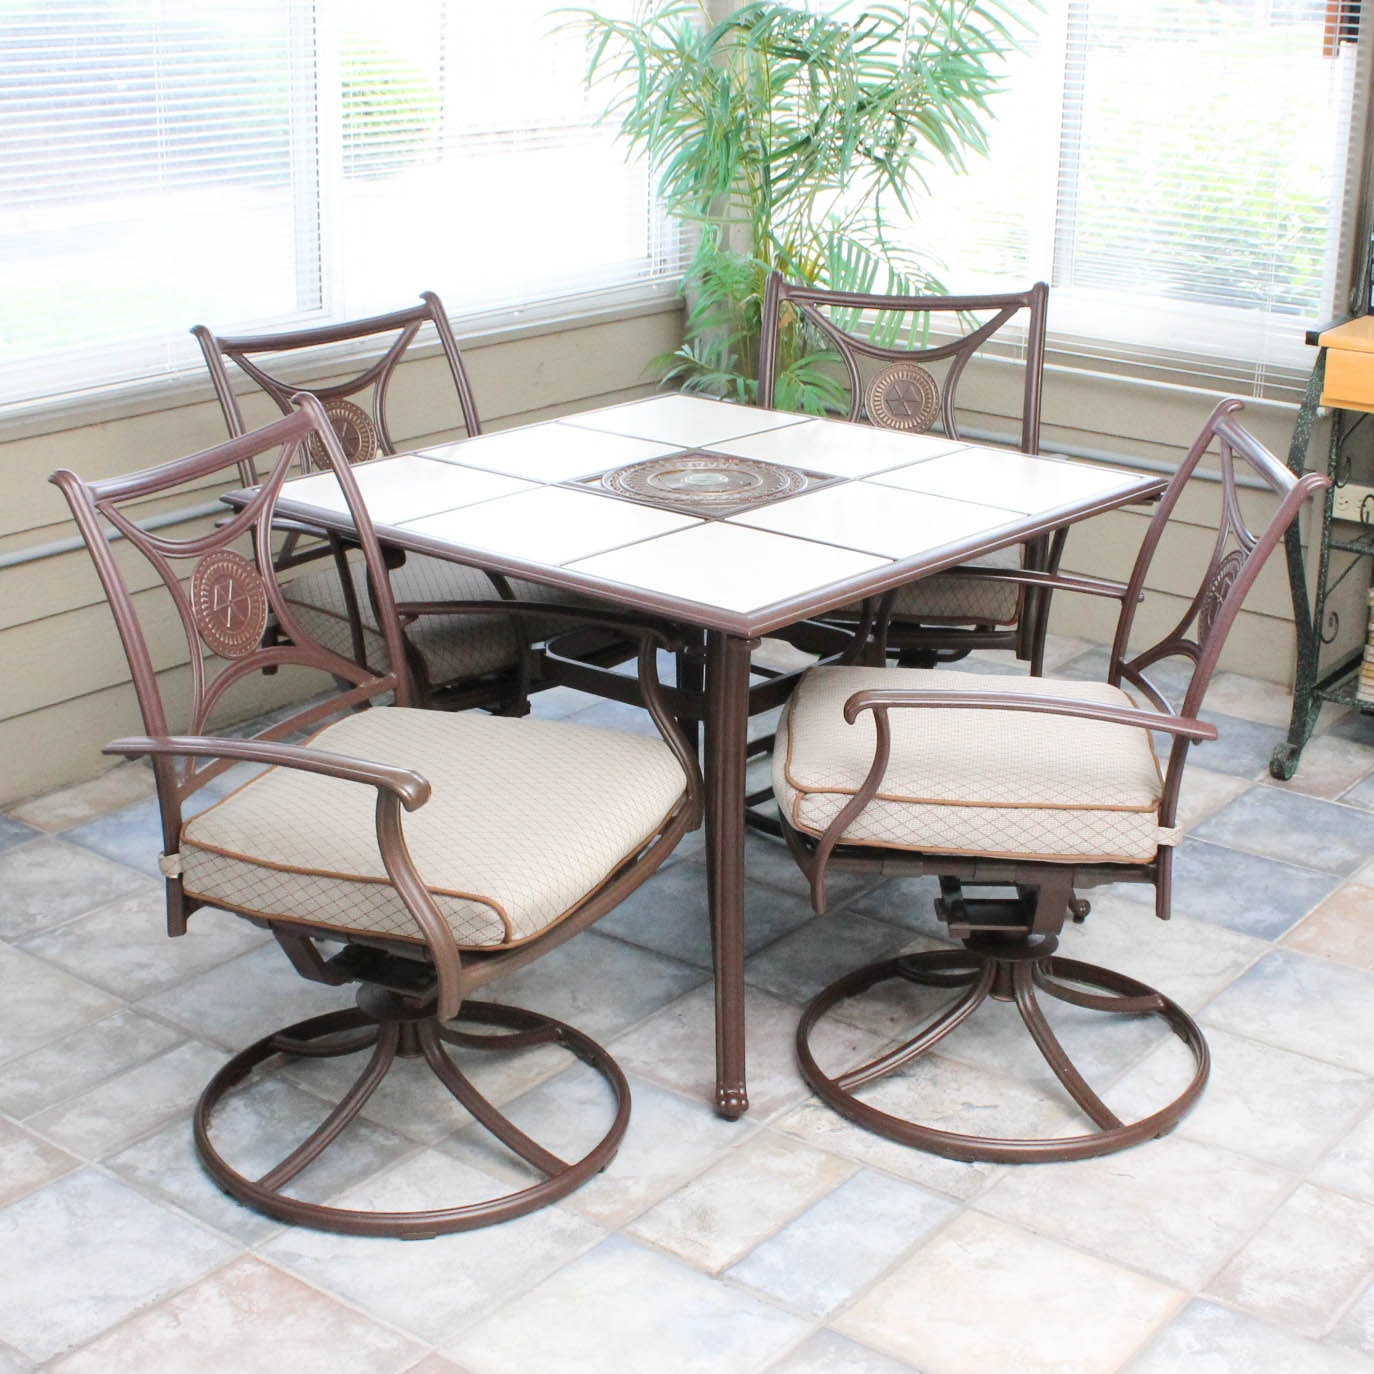 Metal Frame Outdoor Patio Chairs and Tile Top Table